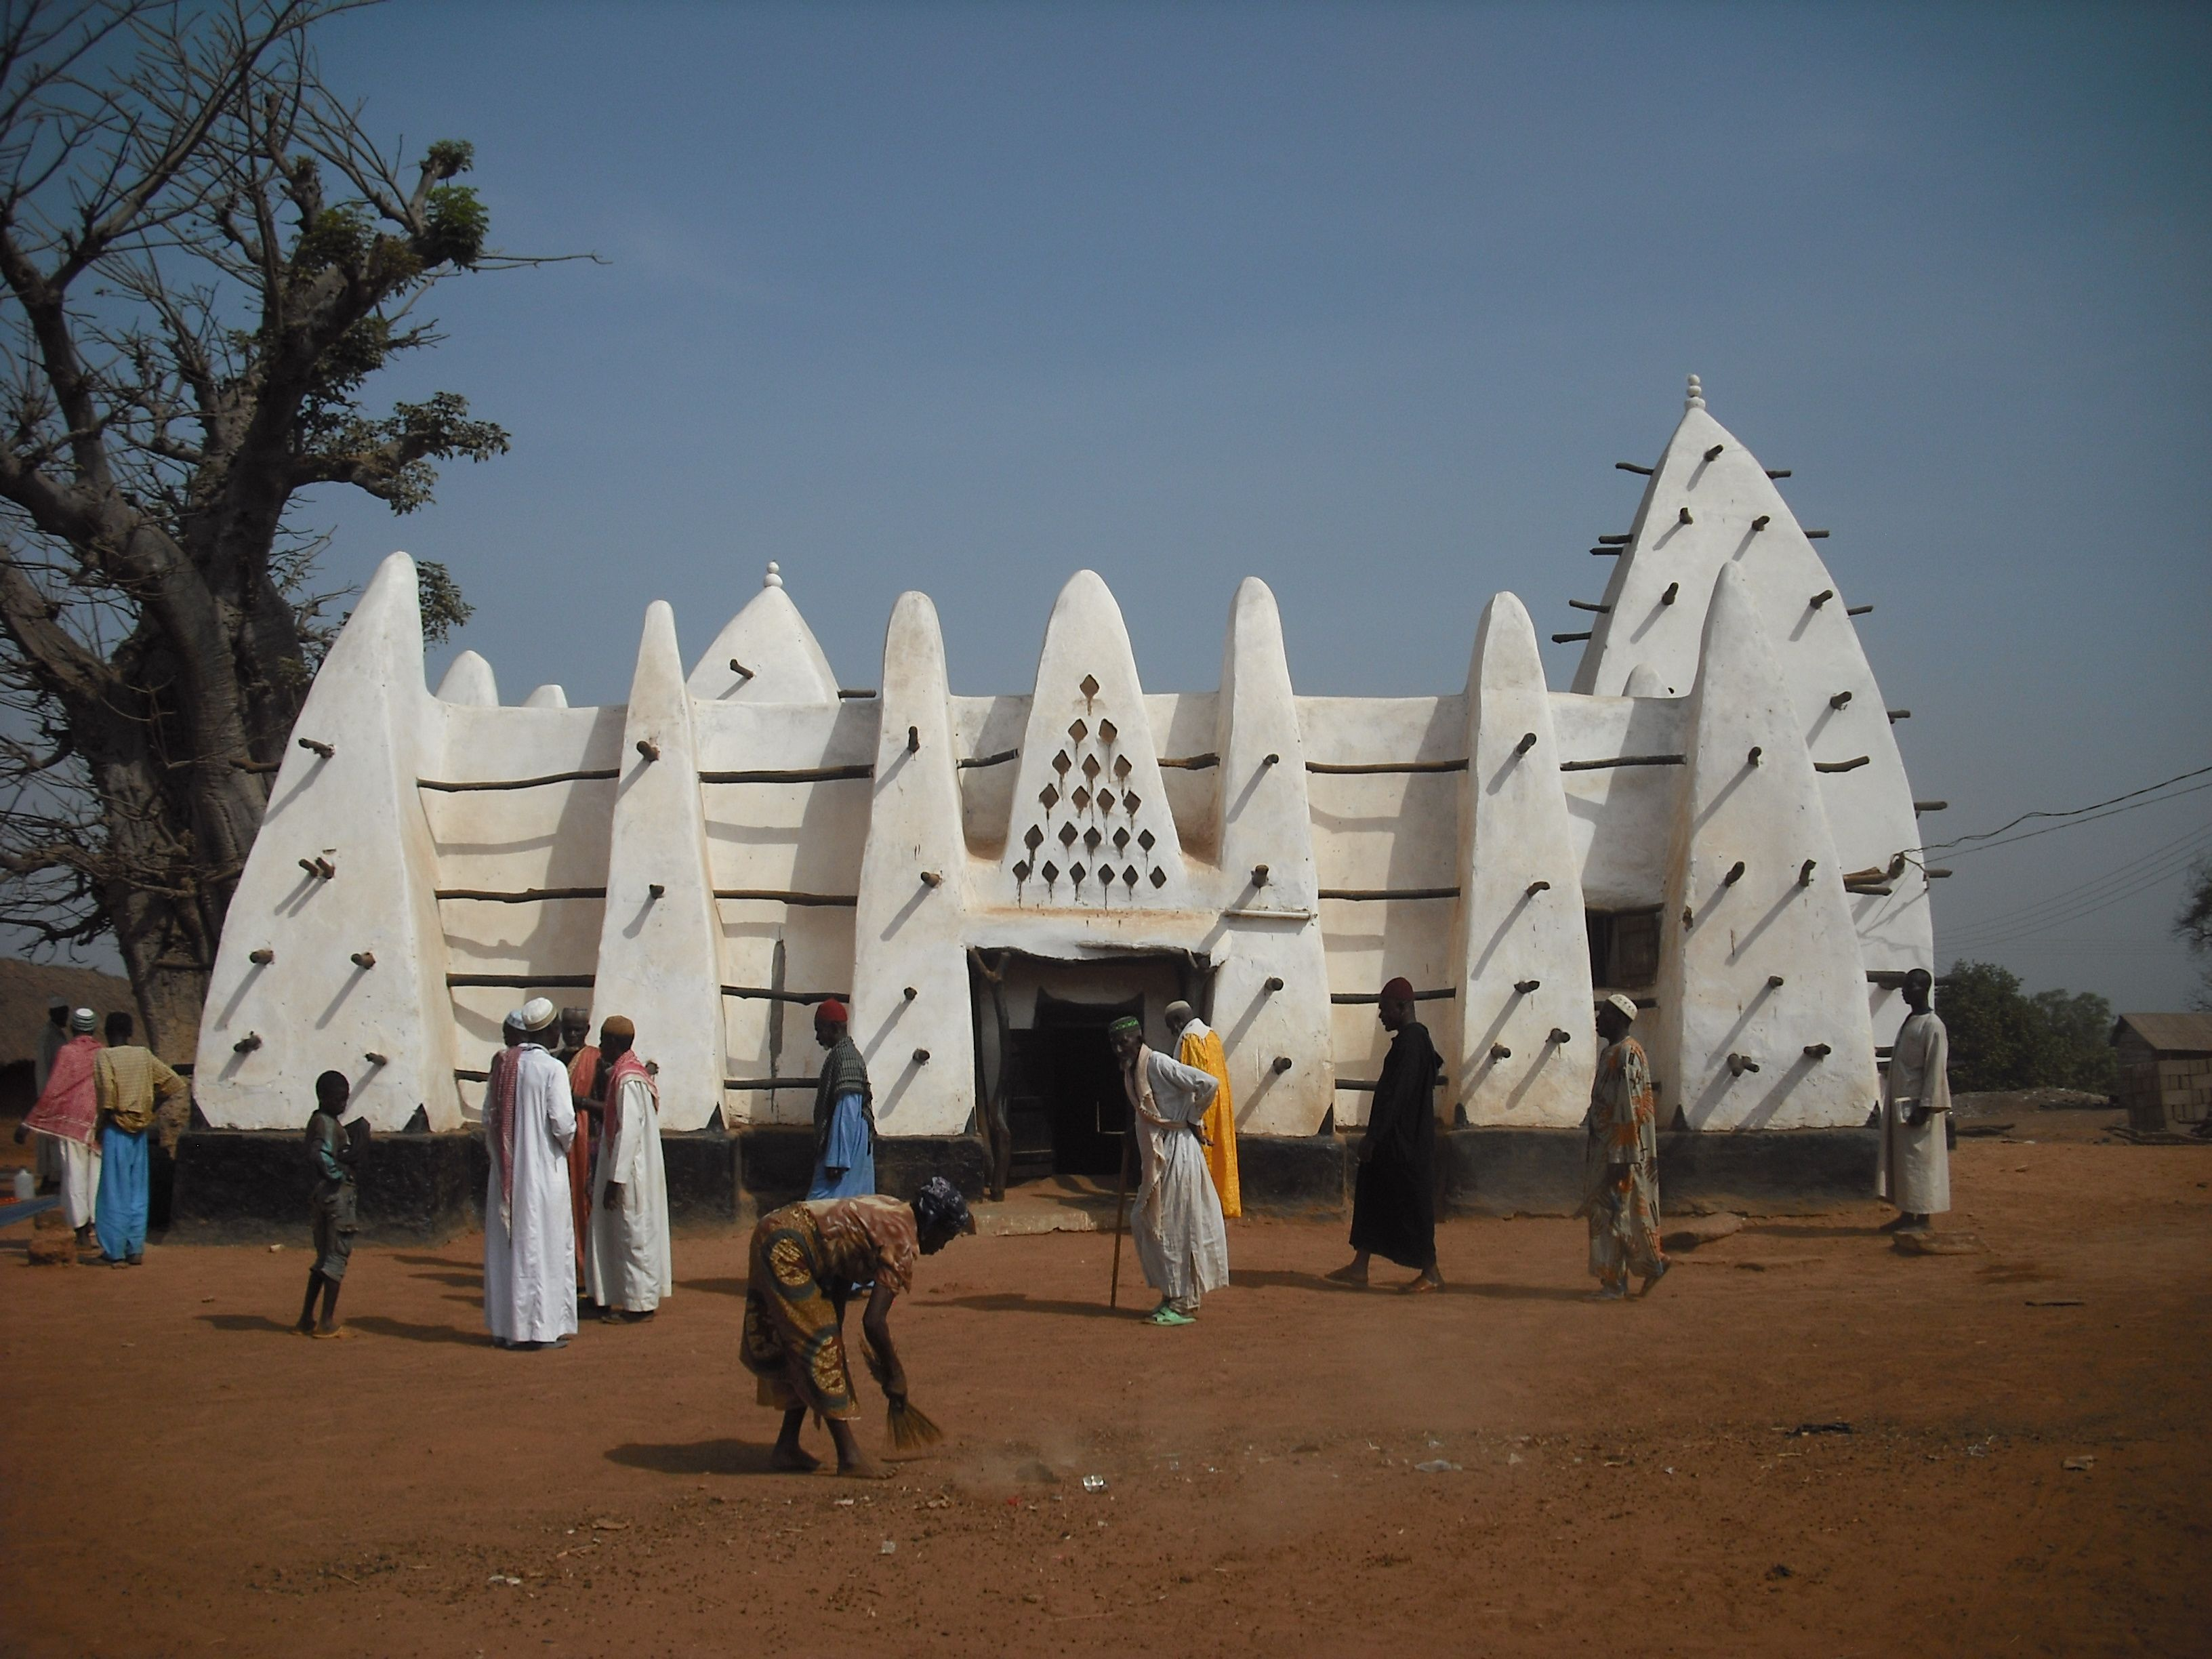 larabanga mosque in gonja land, ghana. though this is not in the